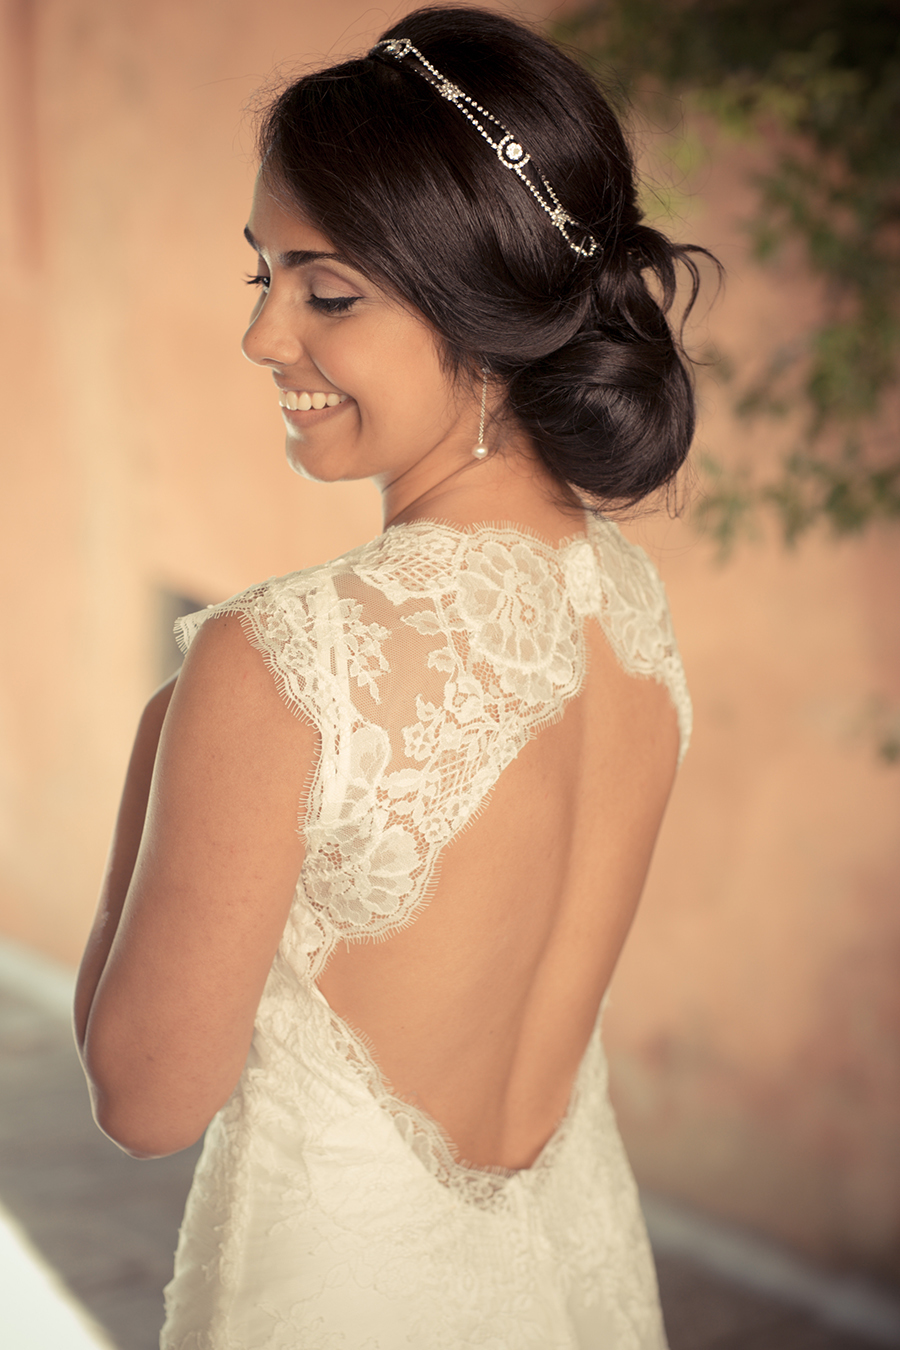 02 :: Romantic Jewish Wedding :: Luxury wedding photography - 2 :: 02